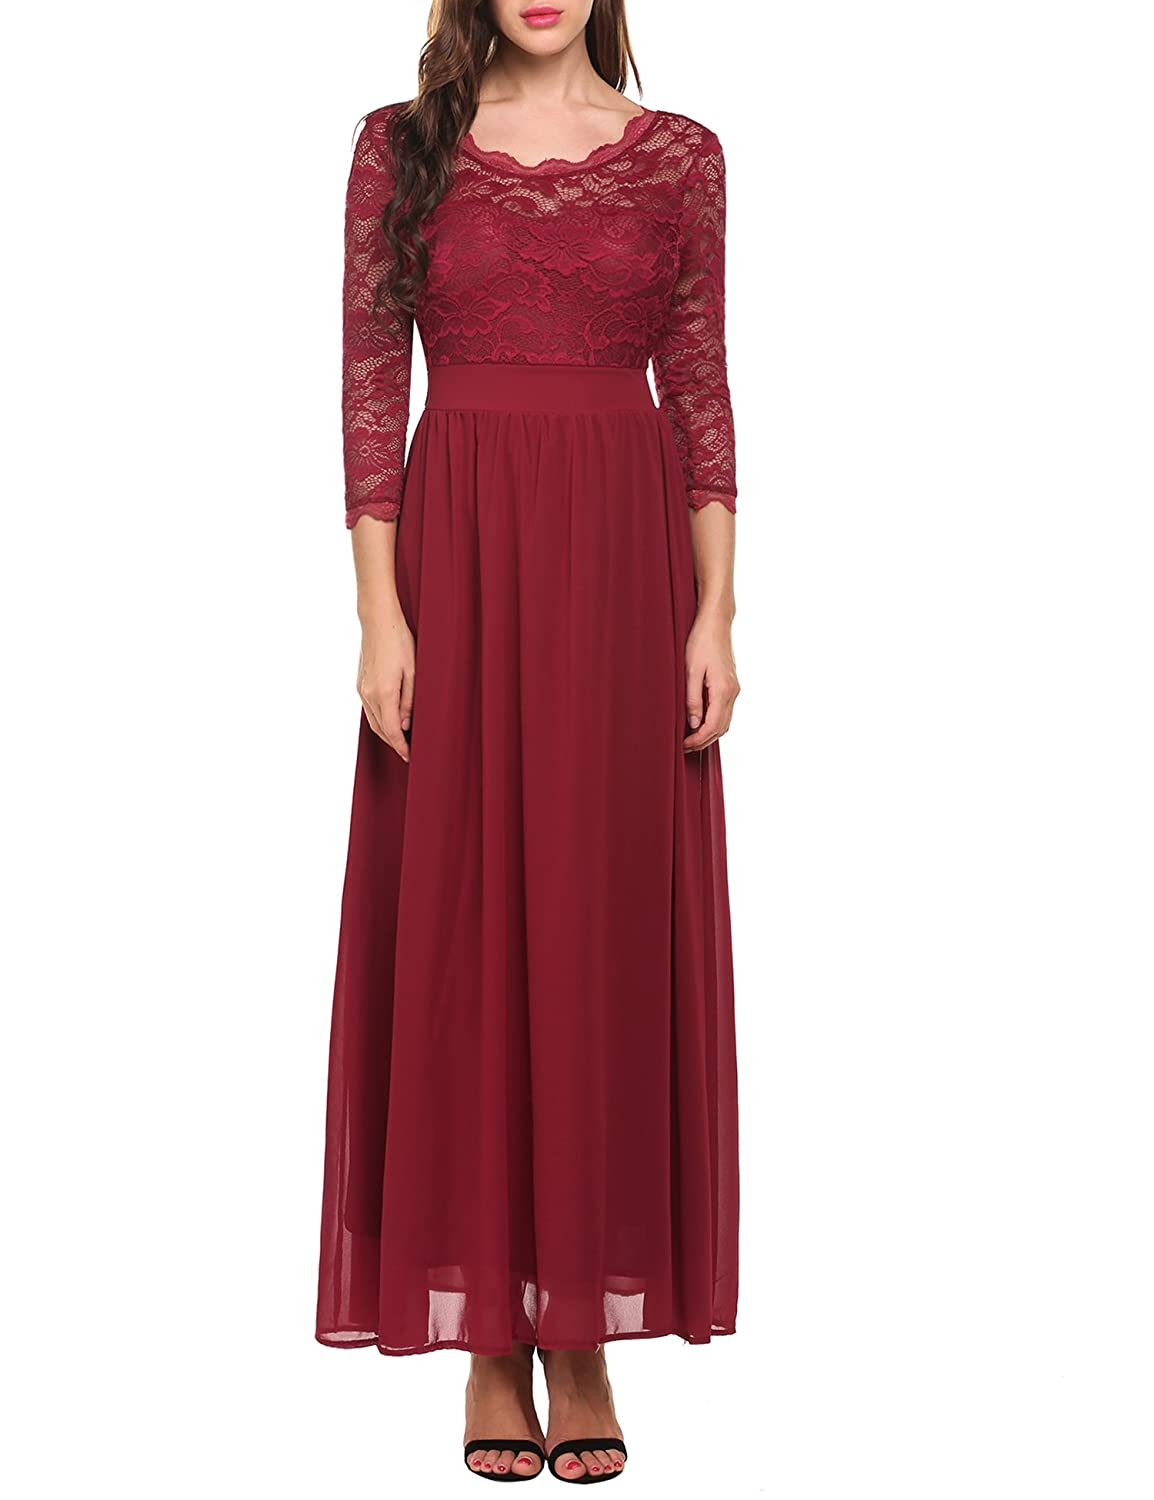 Vintage Inspired Cocktail Dresses, Party Dresses Acevog Womens Floral Lace 2/3 Sleeves Long Formal Evening Dress Maxi Dress $34.99 AT vintagedancer.com